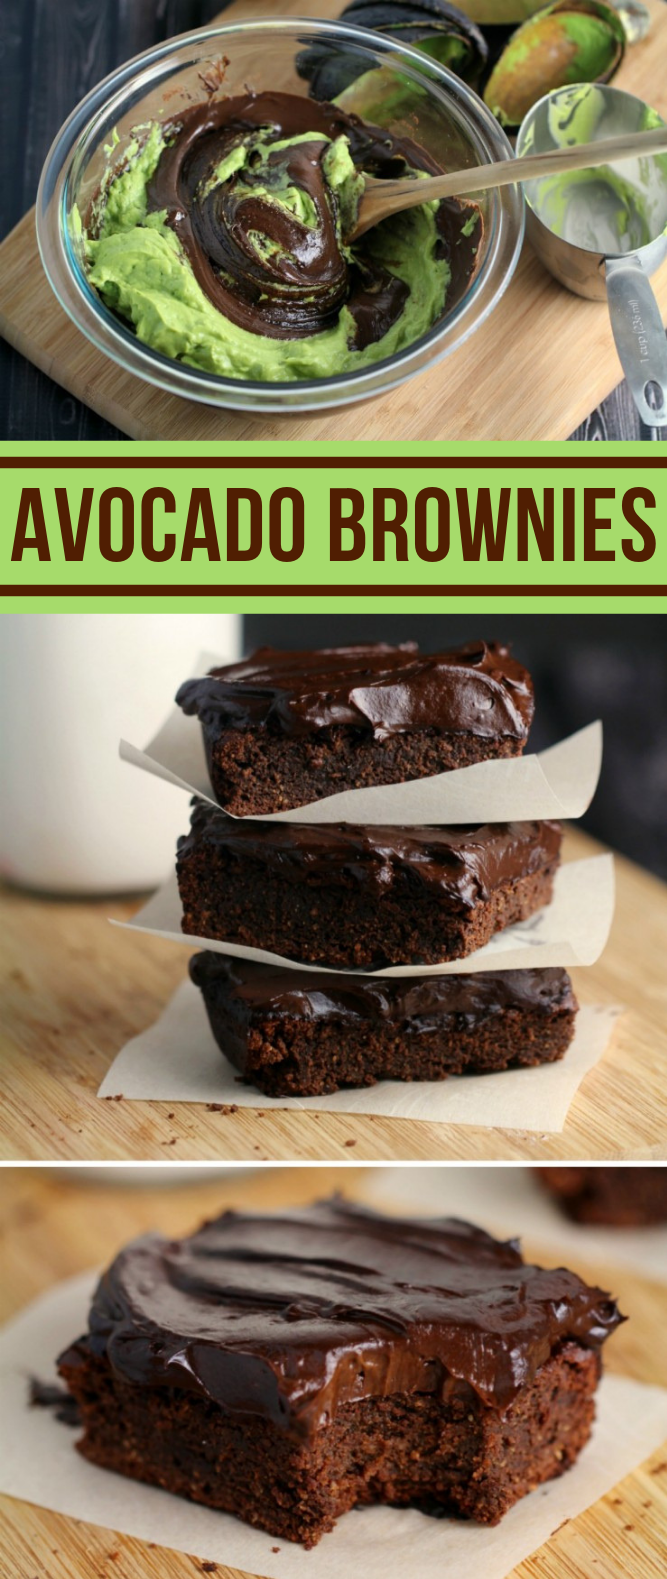 FUDGY AVOCADO BROWNIES WITH AVOCADO FROSTING #healthydessert #vegetarian